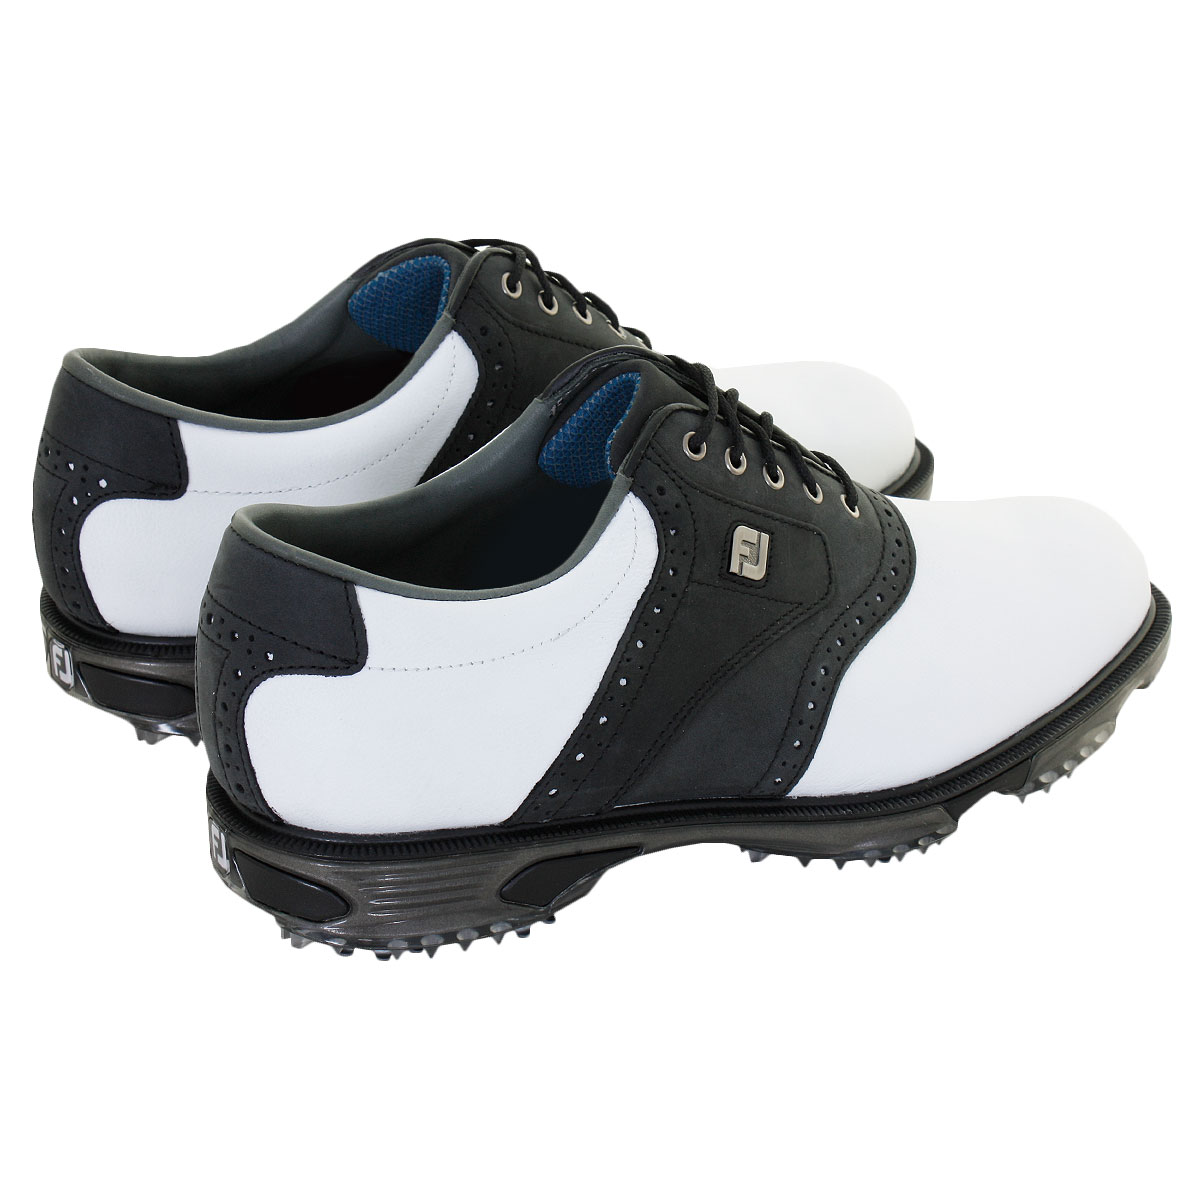 Footjoy-Mens-DryJoys-Tour-Golf-Waterproof-Spiked-Golf-Shoes-53-OFF-RRP thumbnail 11